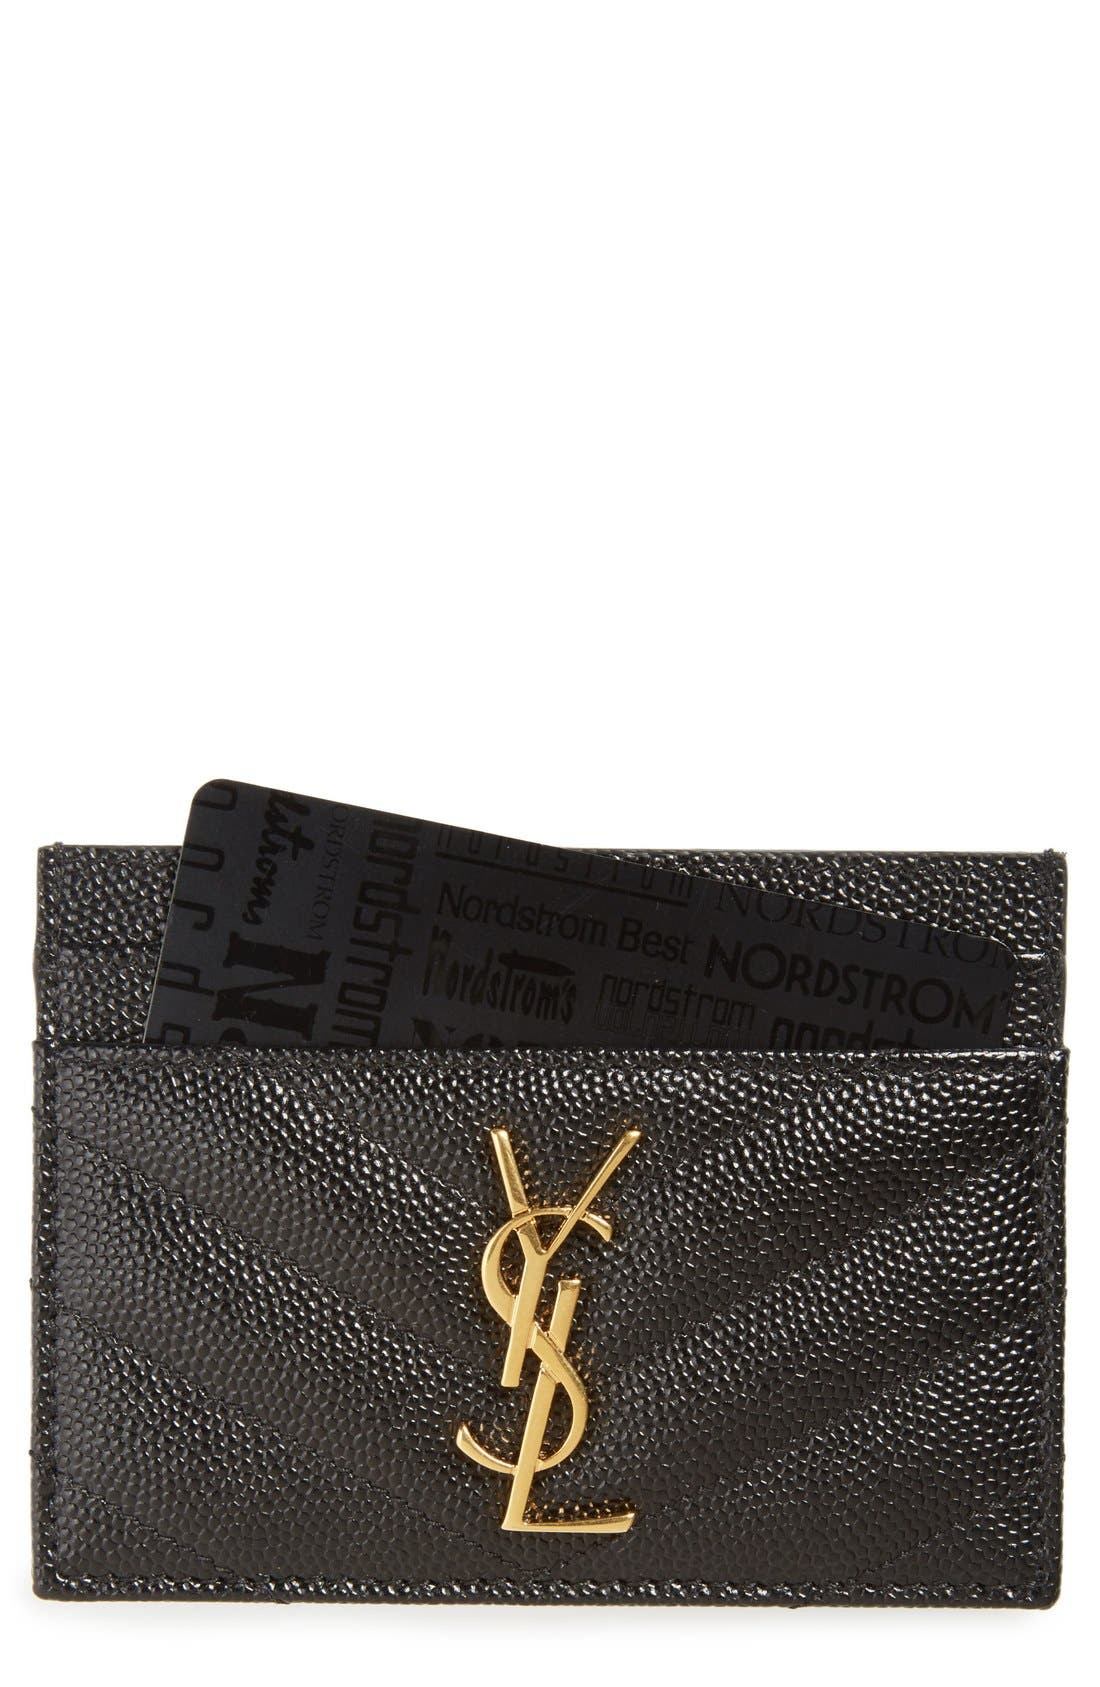 Monogram Quilted Leather Credit Card Case,                             Main thumbnail 1, color,                             Nero